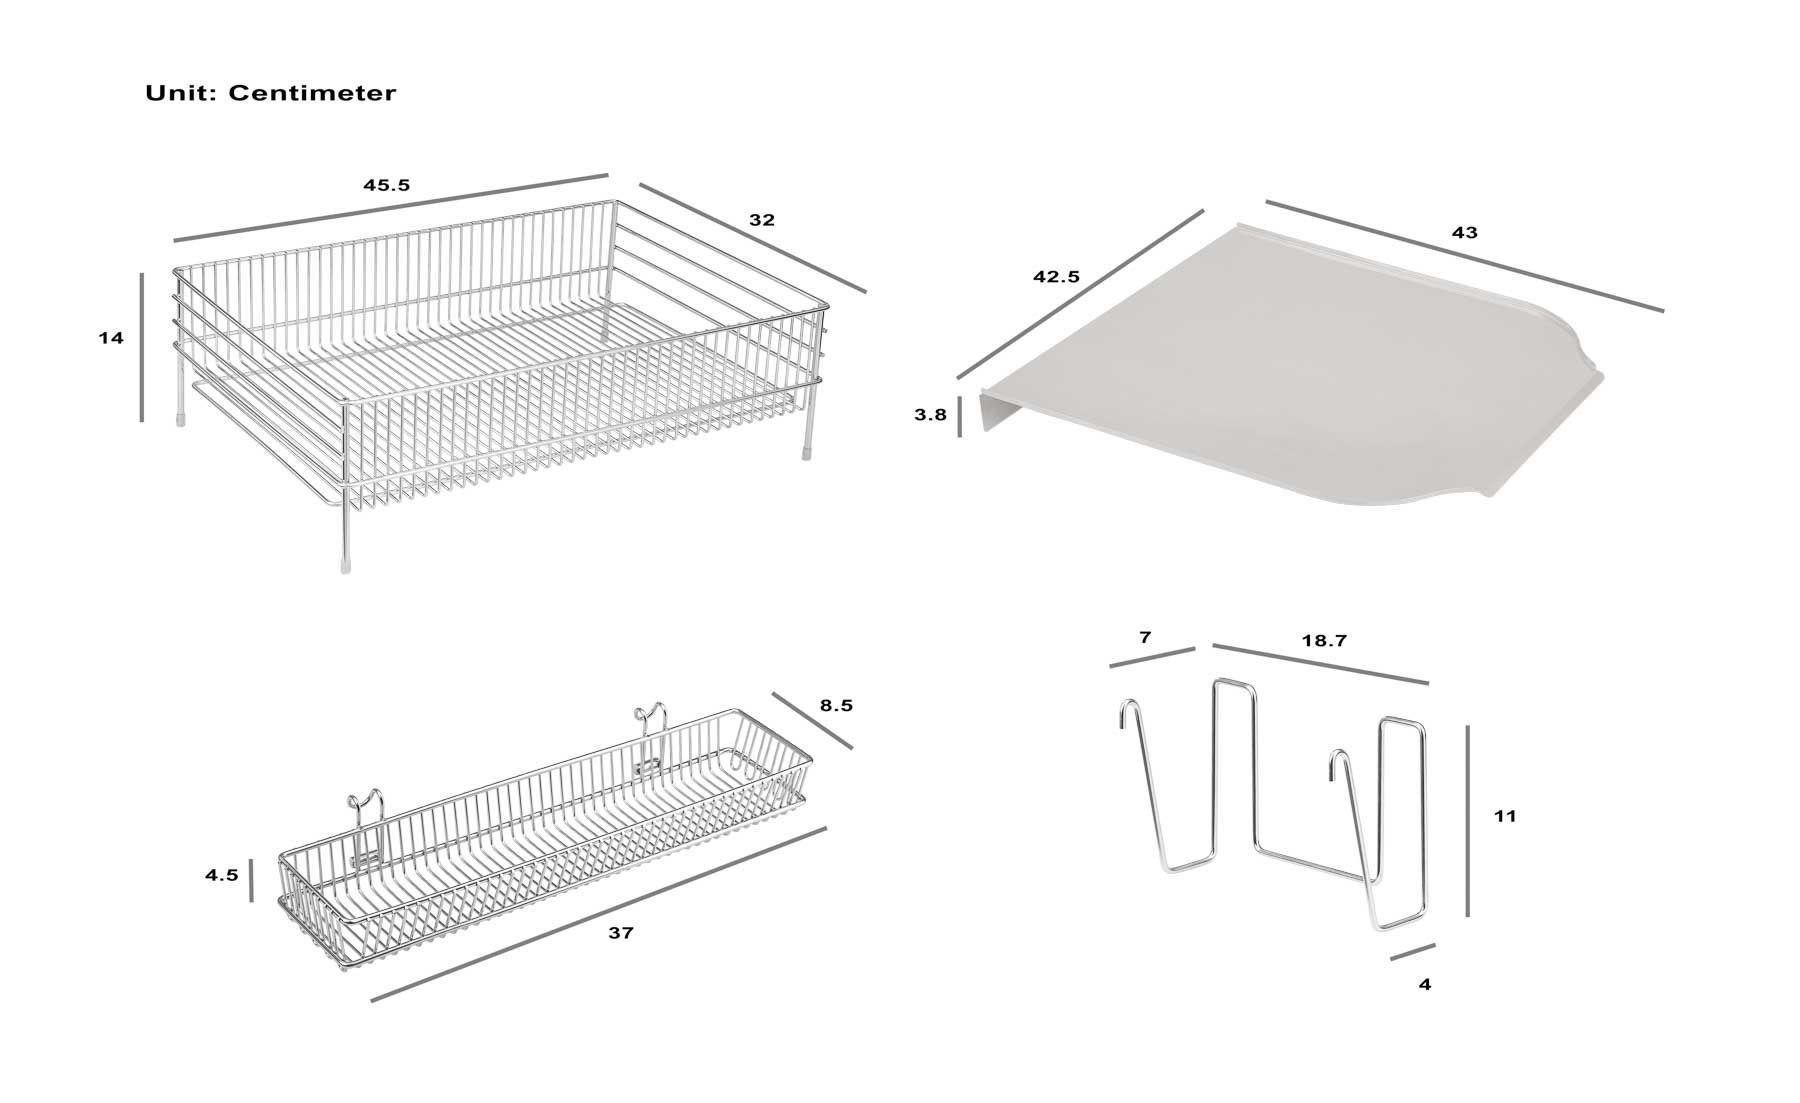 Dish Rack Four parts composite - - Product photography for Amazon